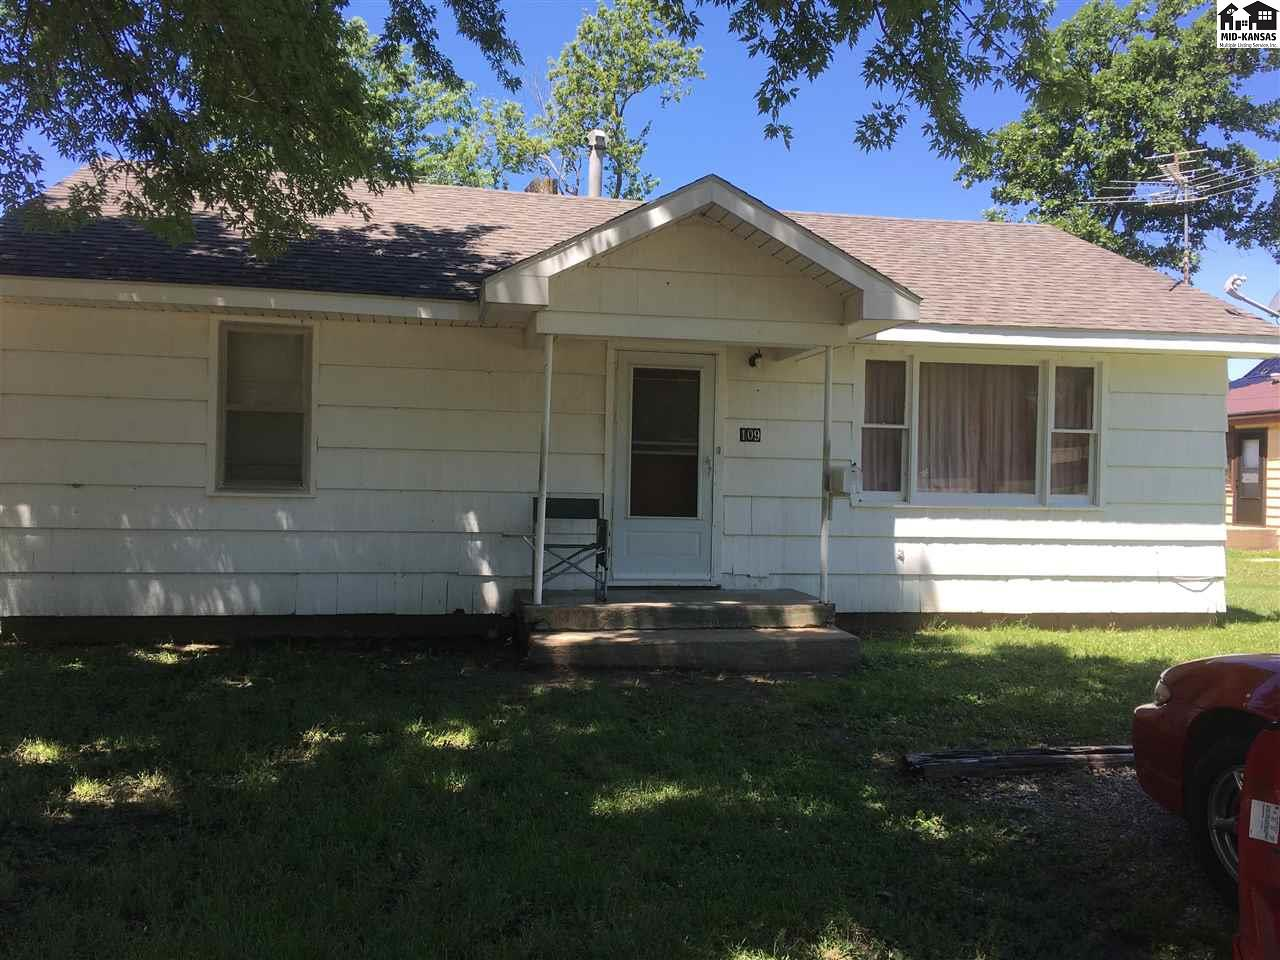 This is a great opportunity to purchase a rental home. It has a tenant in place with a lease agreement. This rental is a 2 bedroom, 1 bath house located just south of East Main street in Lyons.